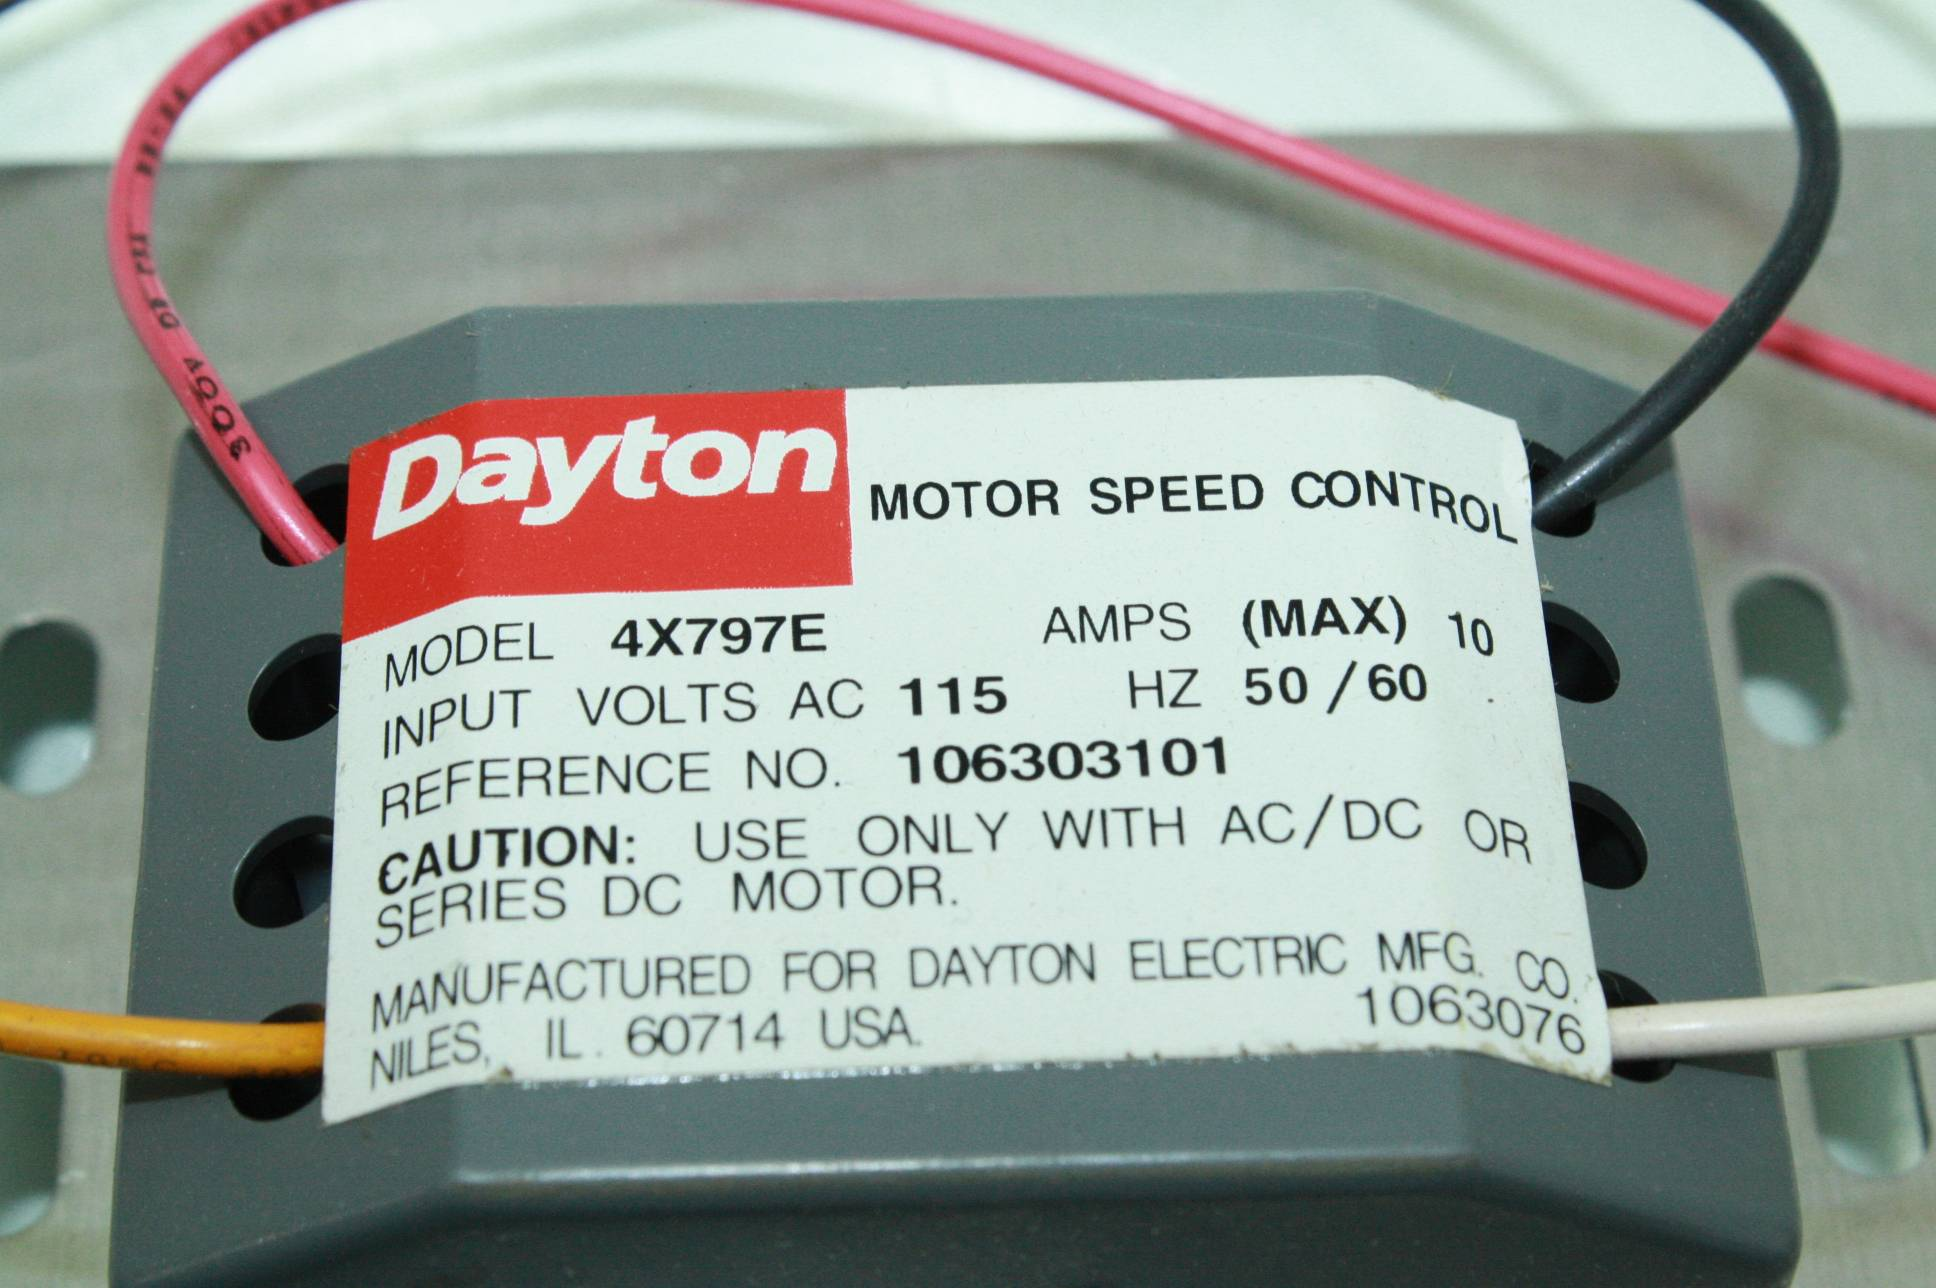 Dayton sd control Ac manual on